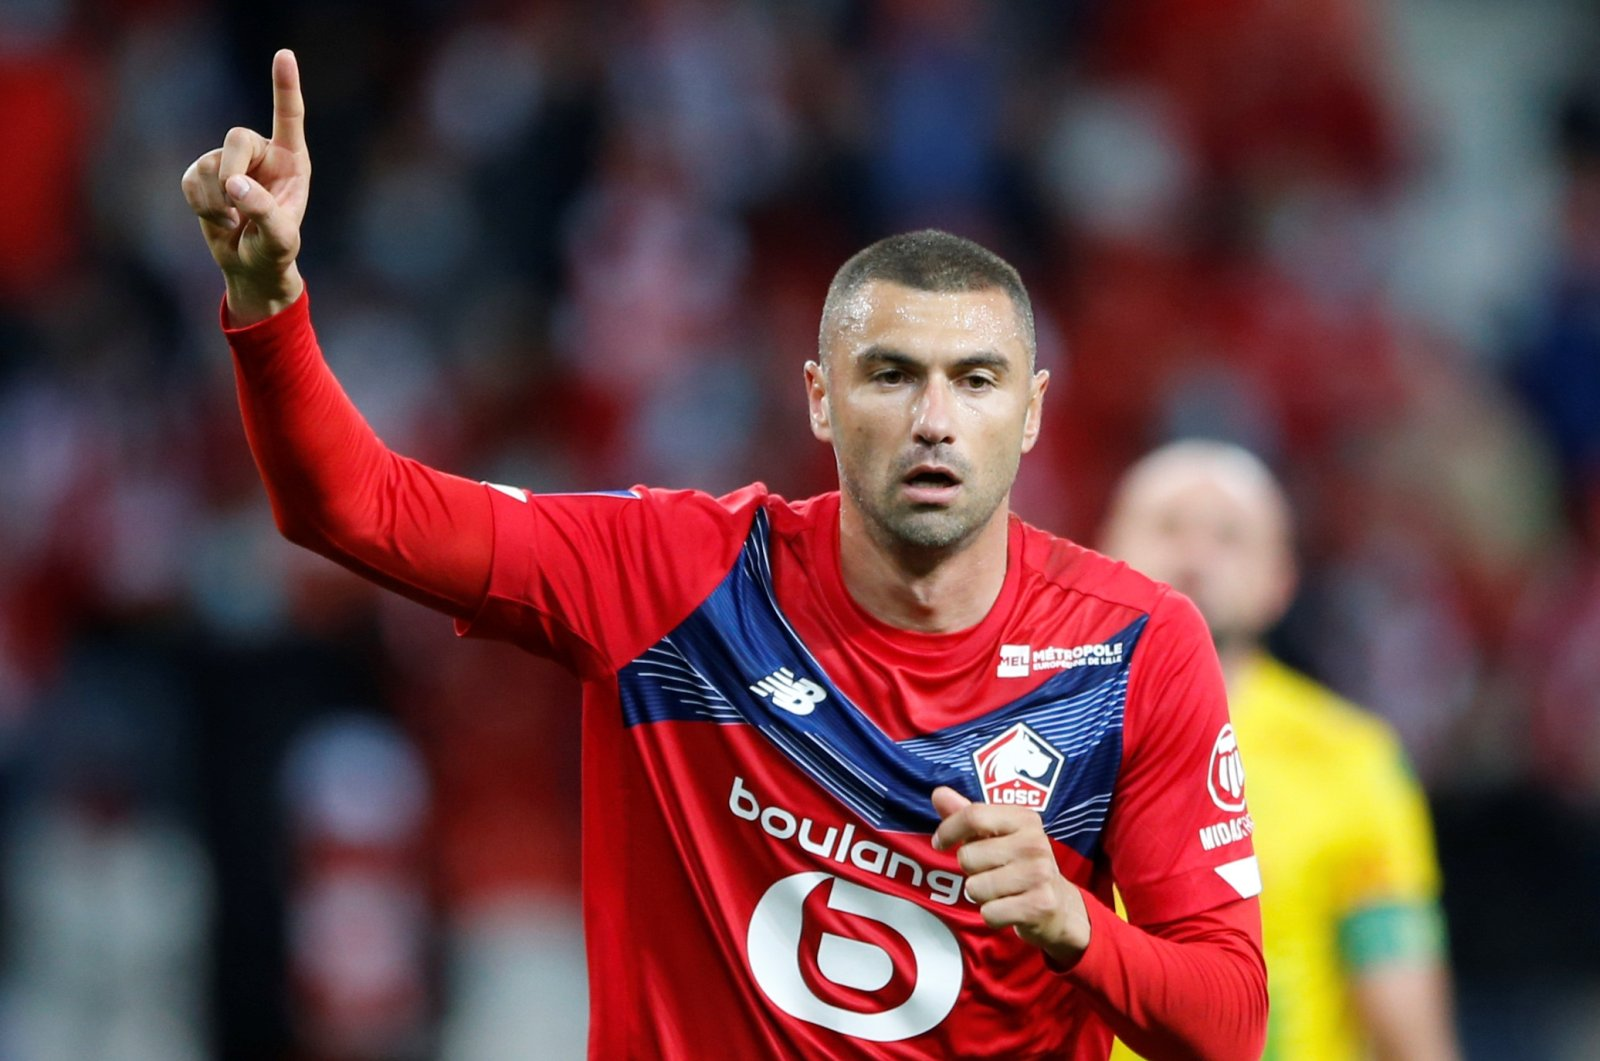 Lille's Turkish forward Burak Yılmaz celebrates scoring a goal during a Ligue 1 football match between Lille and Nantes at Stade Pierre-Mauroy, Lille, France, Sept. 25, 2020. (Reuters Photo)